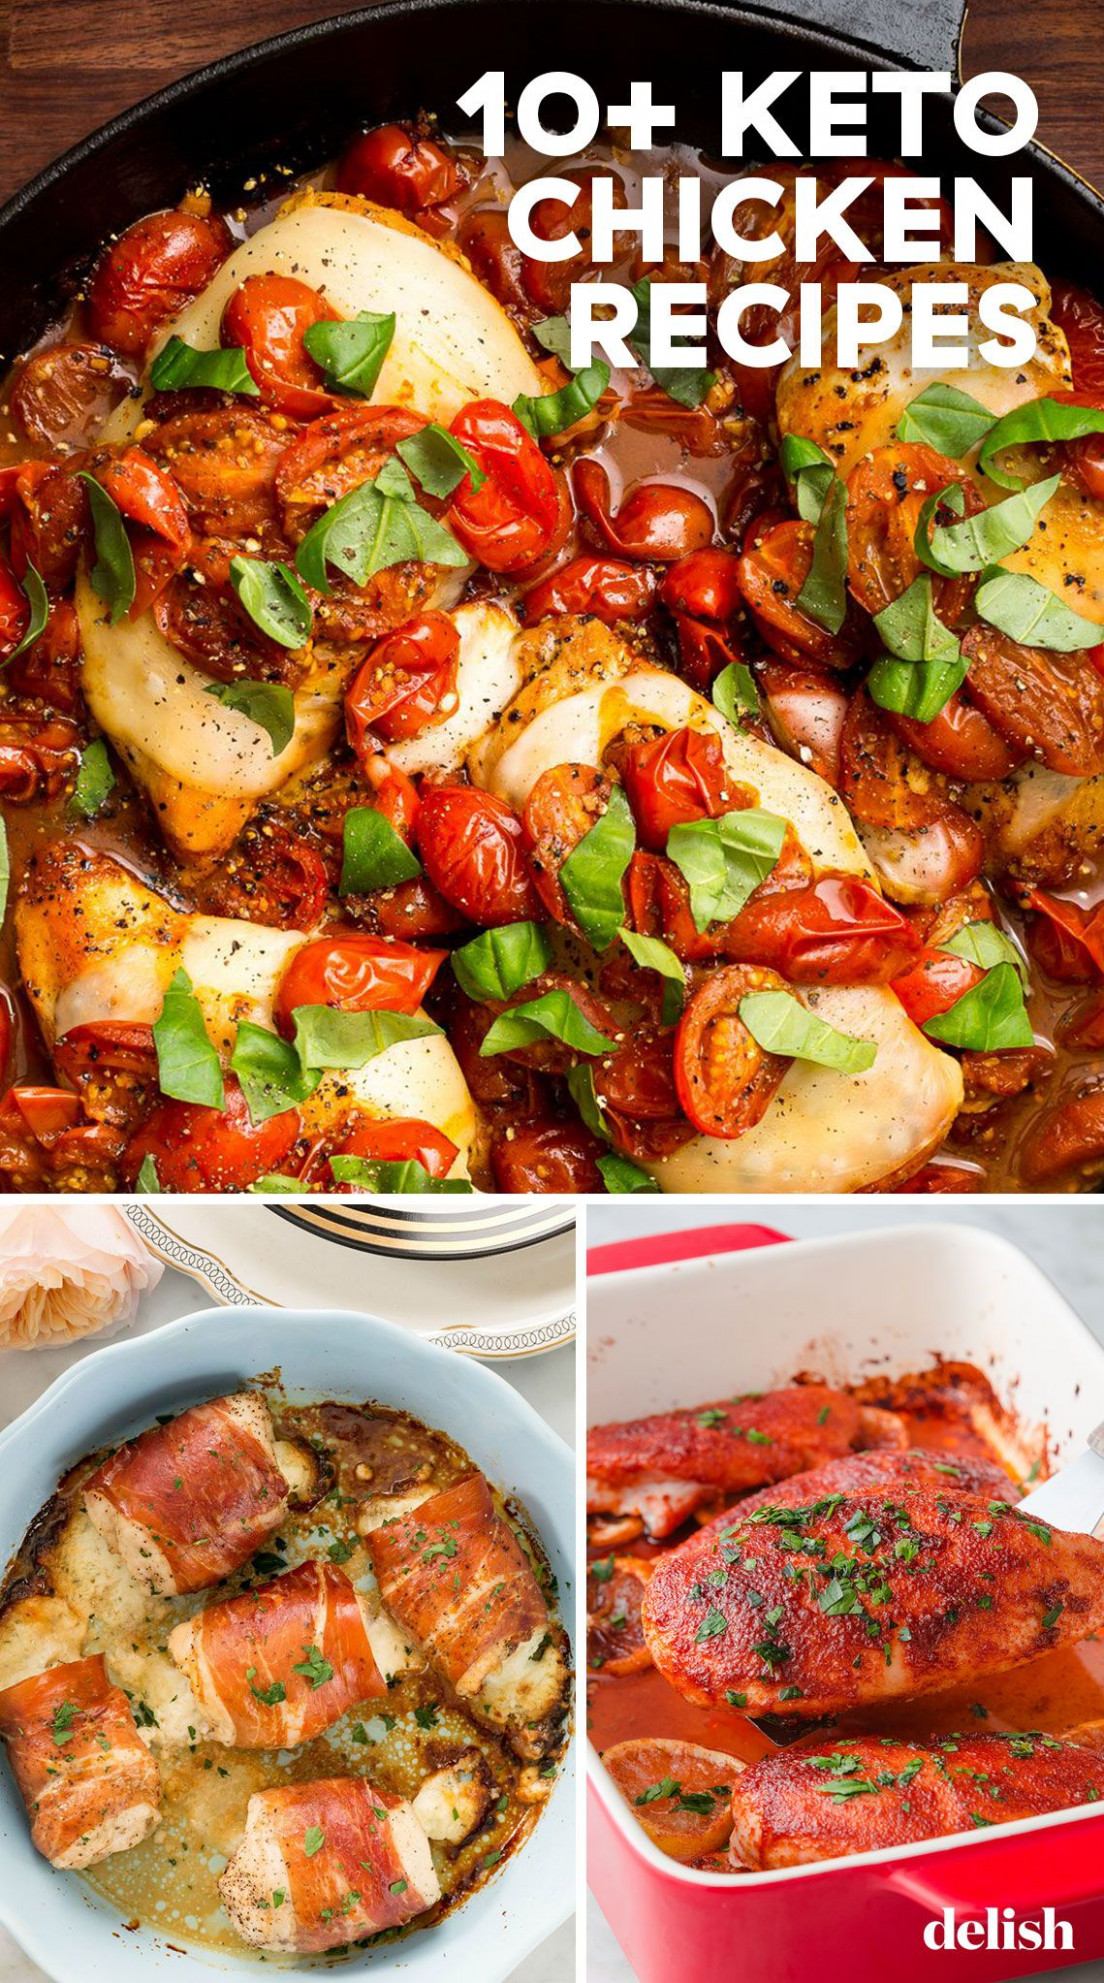 12+ Easy Keto Chicken Recipes - Best Ketogenic Chicken Ideas